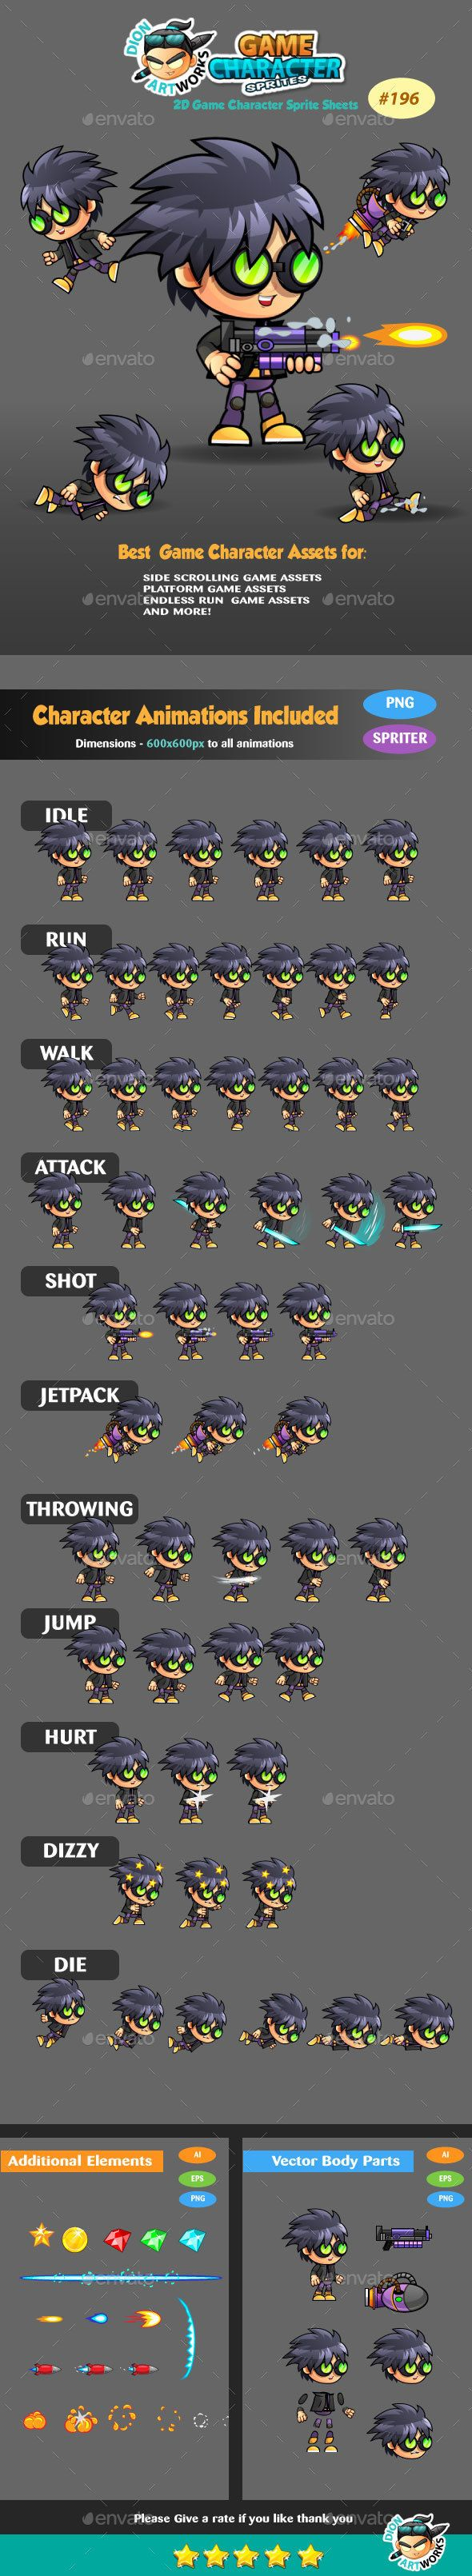 2D #Game Character Sprites 196 - Sprites Game #Assets Download here: https://graphicriver.net/item/2d-game-character-sprites-196/15020384?ref=alena994